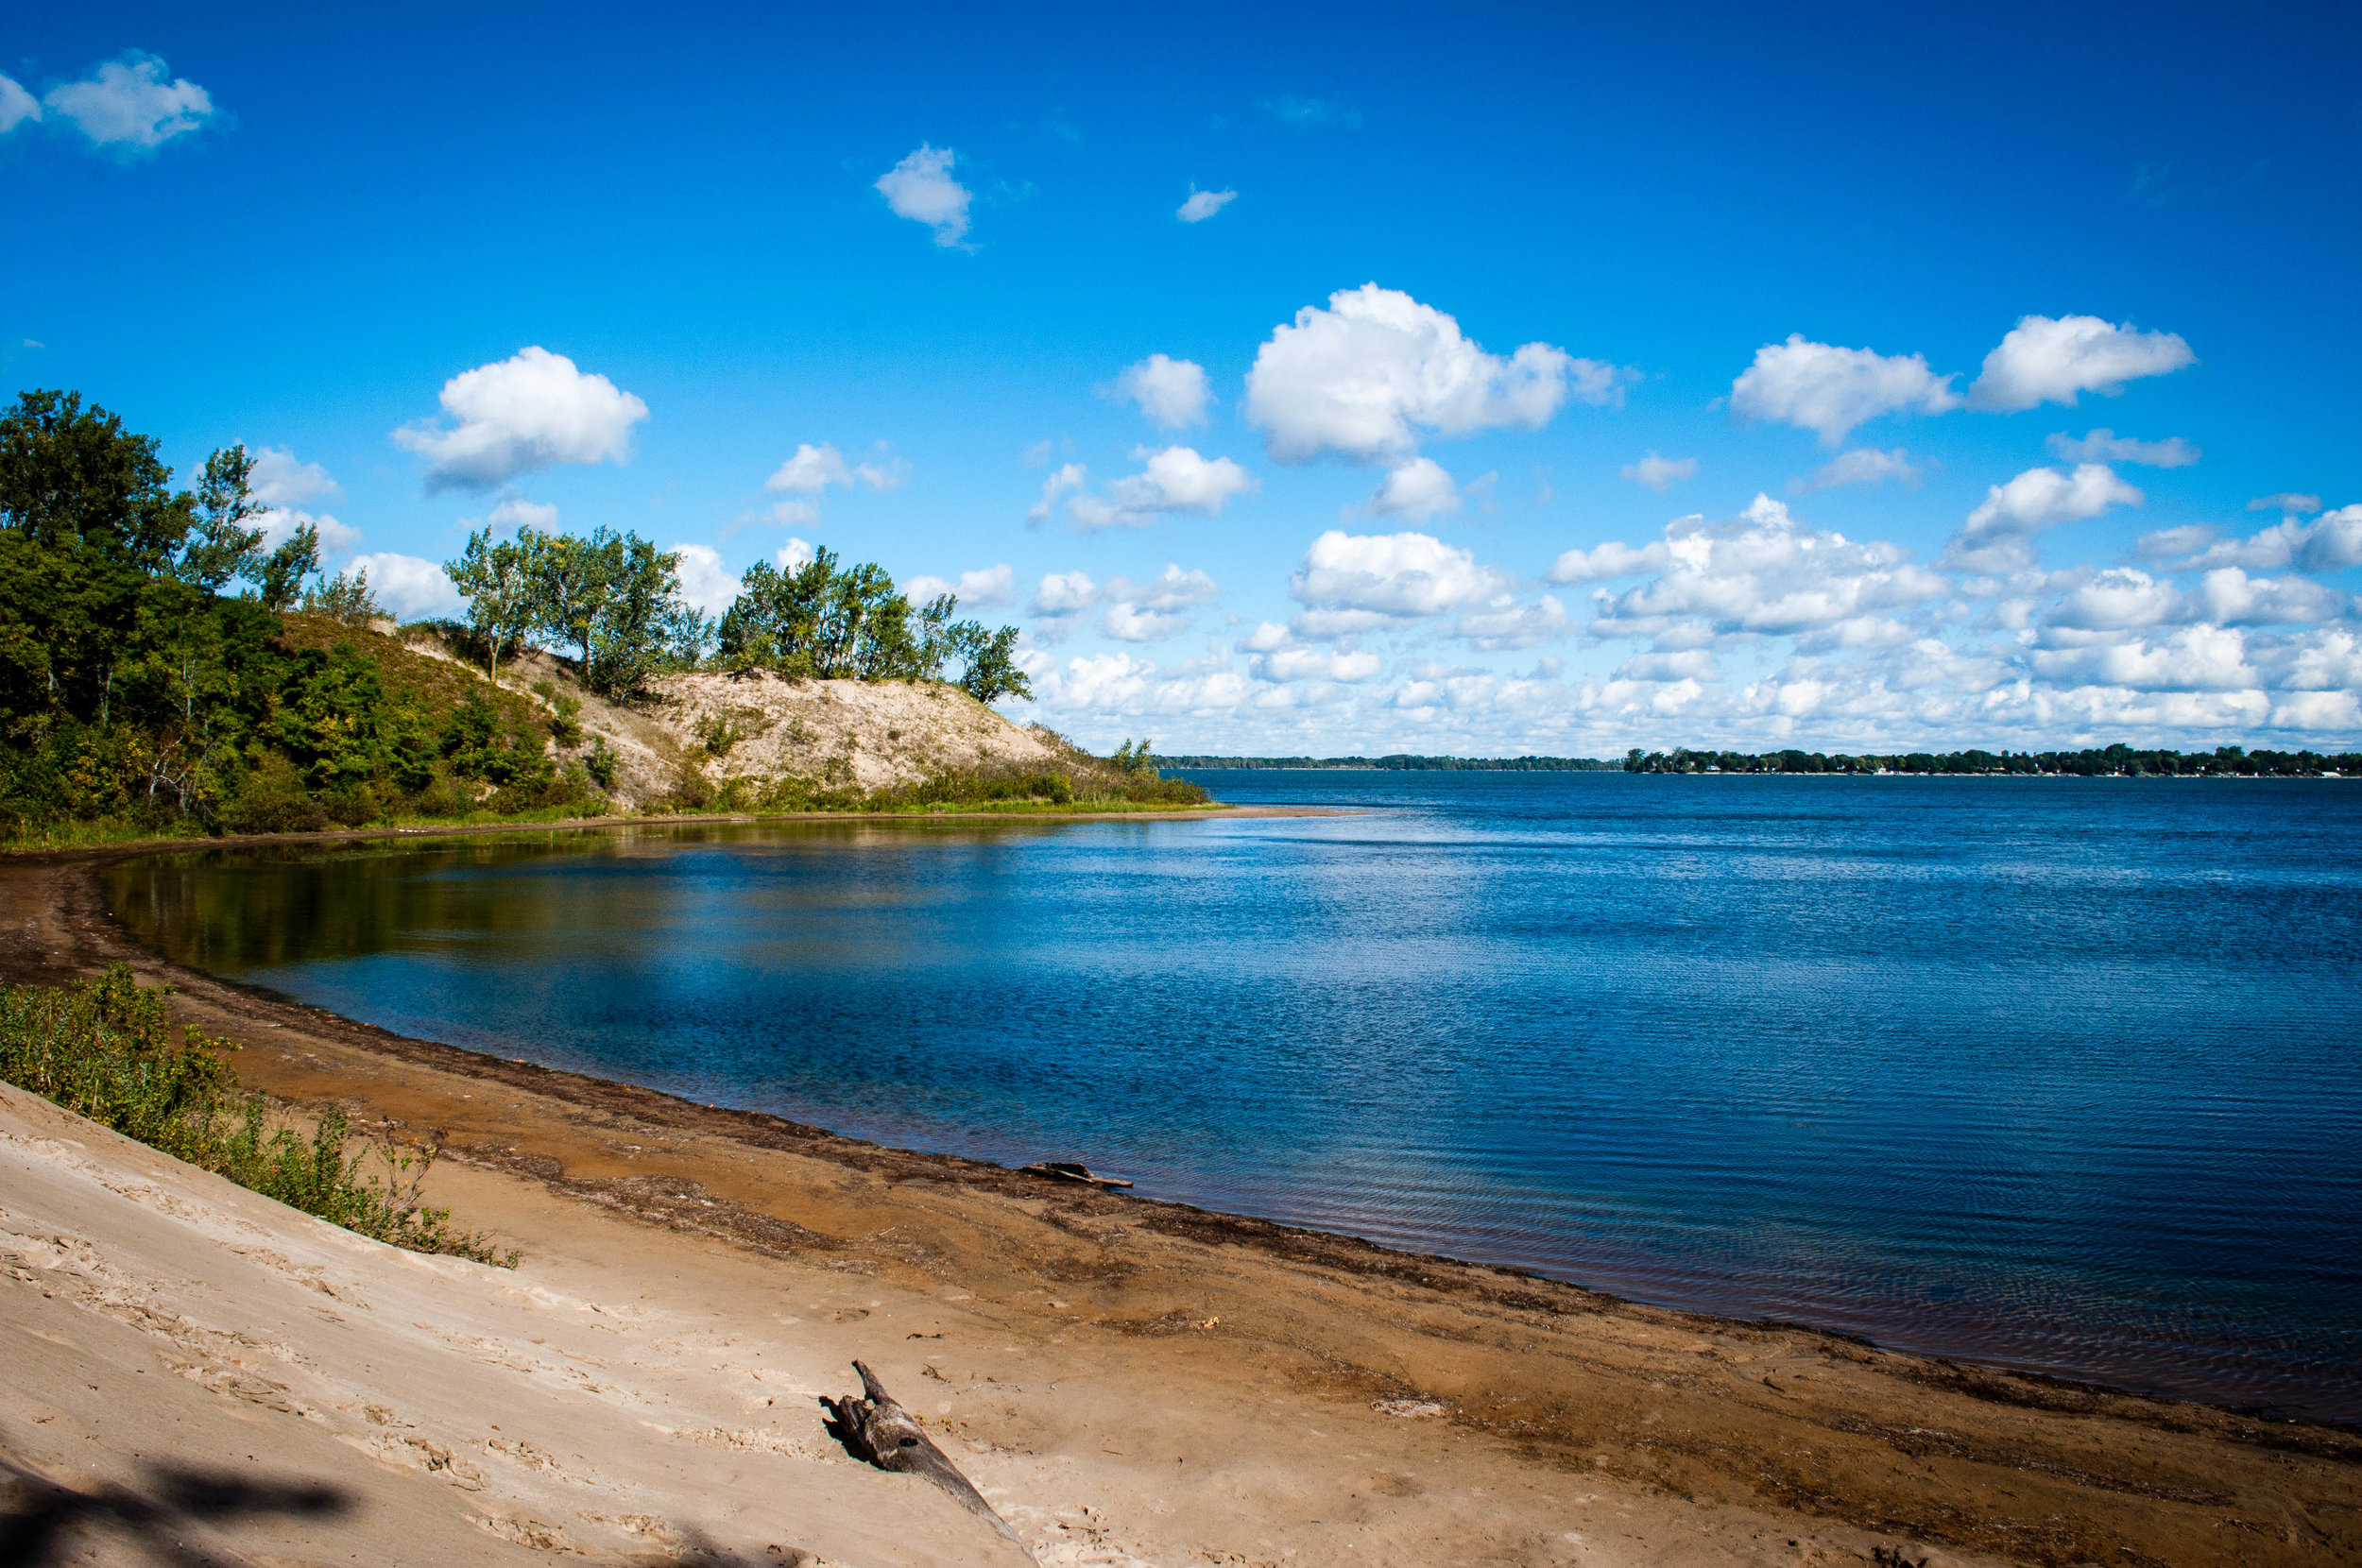 Sandbanks provincial park - Things to do in Prince Edward County